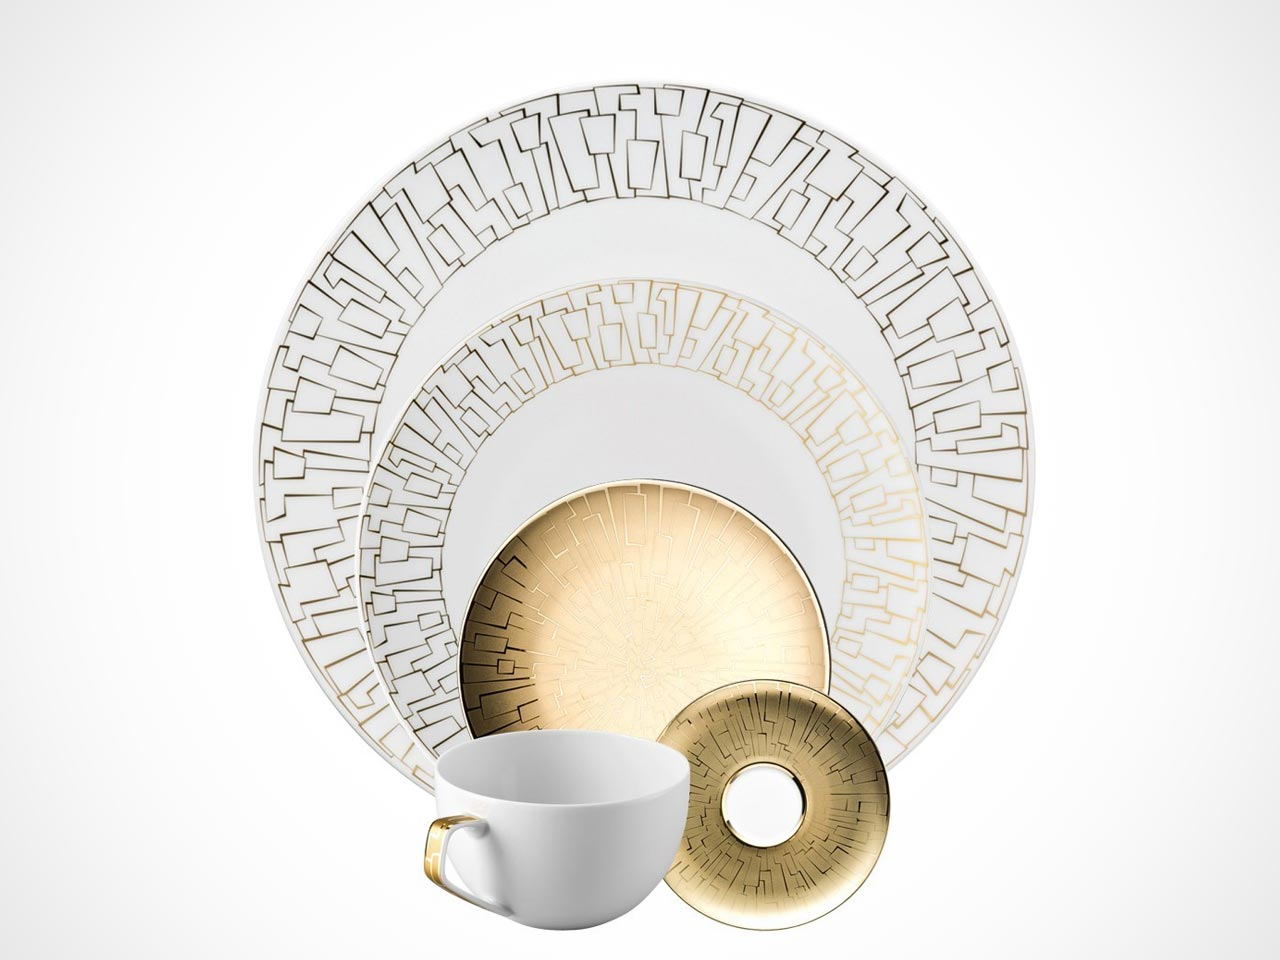 Rosenthal TAC 02 Skin Gold 5 piece place setting on white background.